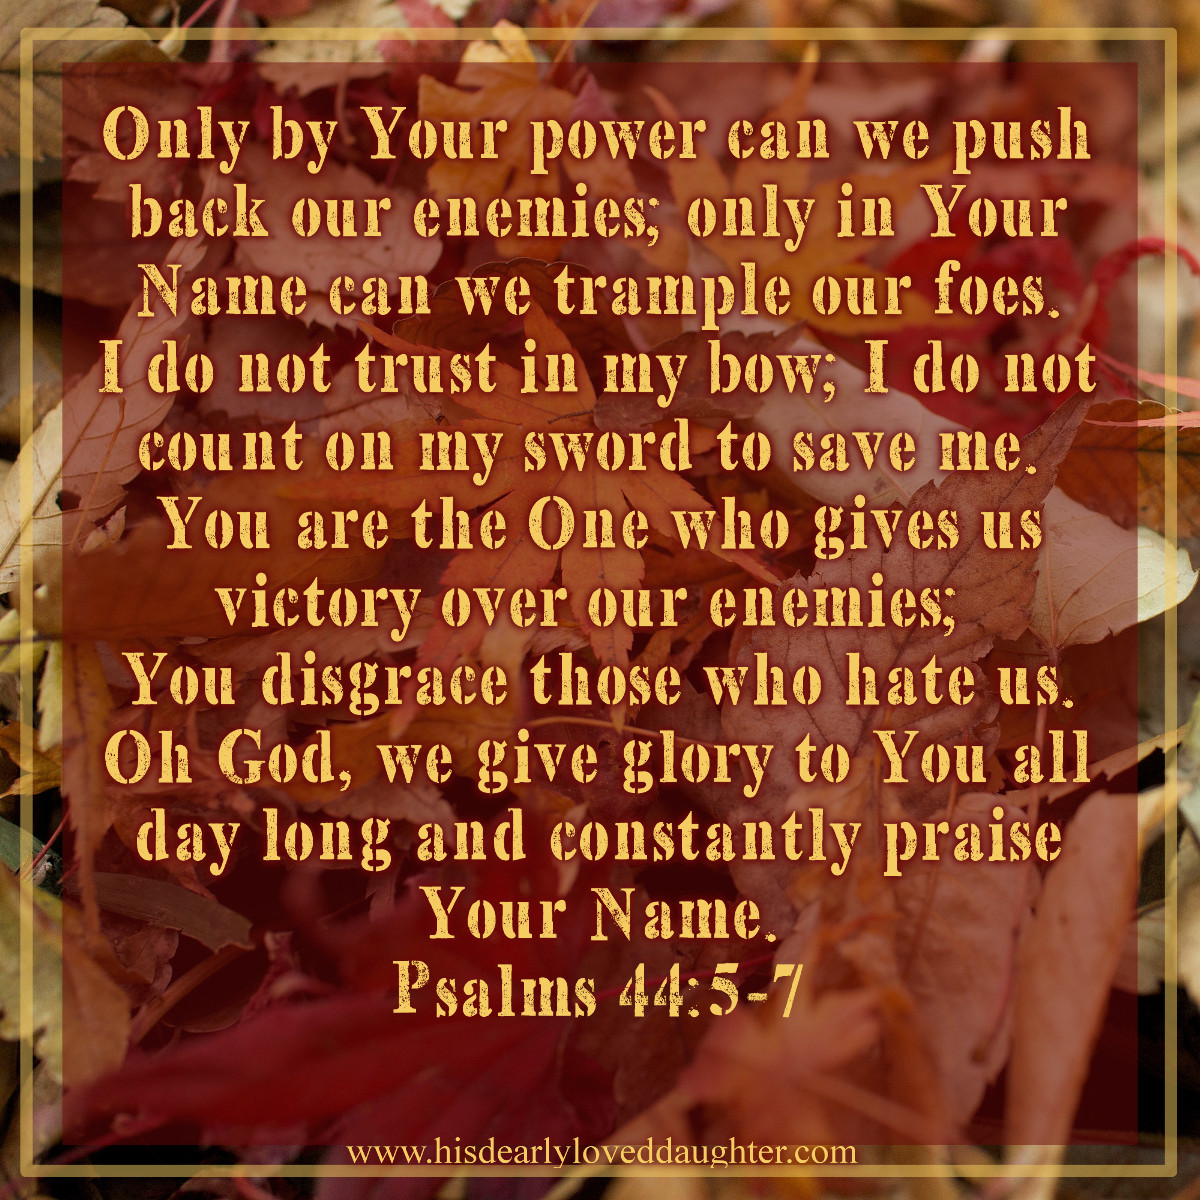 Only by Your power can we push back our enemies; only in Your Name can we trample our foes. I do not trust in my bow; I do not count on my sword to save me. You are the One who gives us victory over our enemies; You disgrace those who hate us. Oh God, we give glory to You all day long and constantly praise Your Name. Psalms 44:5-7